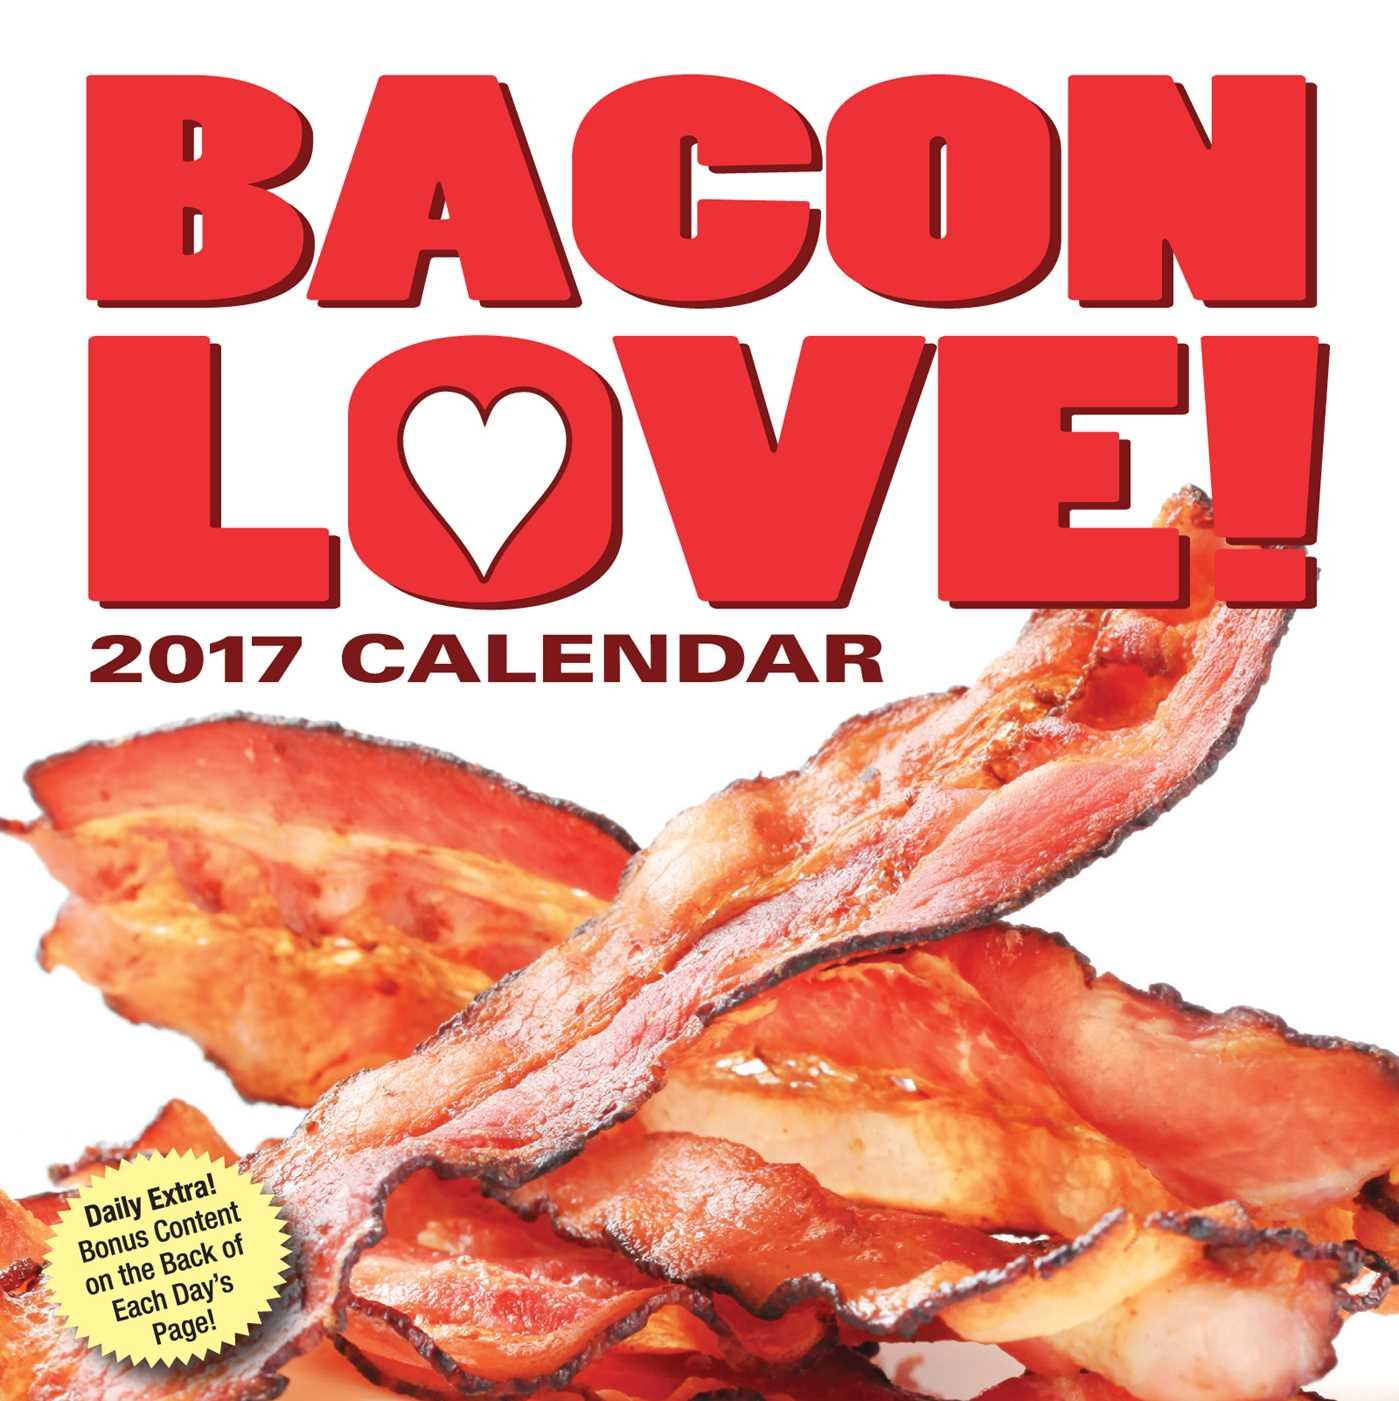 Bacon Love 2017 Day Calendar product image